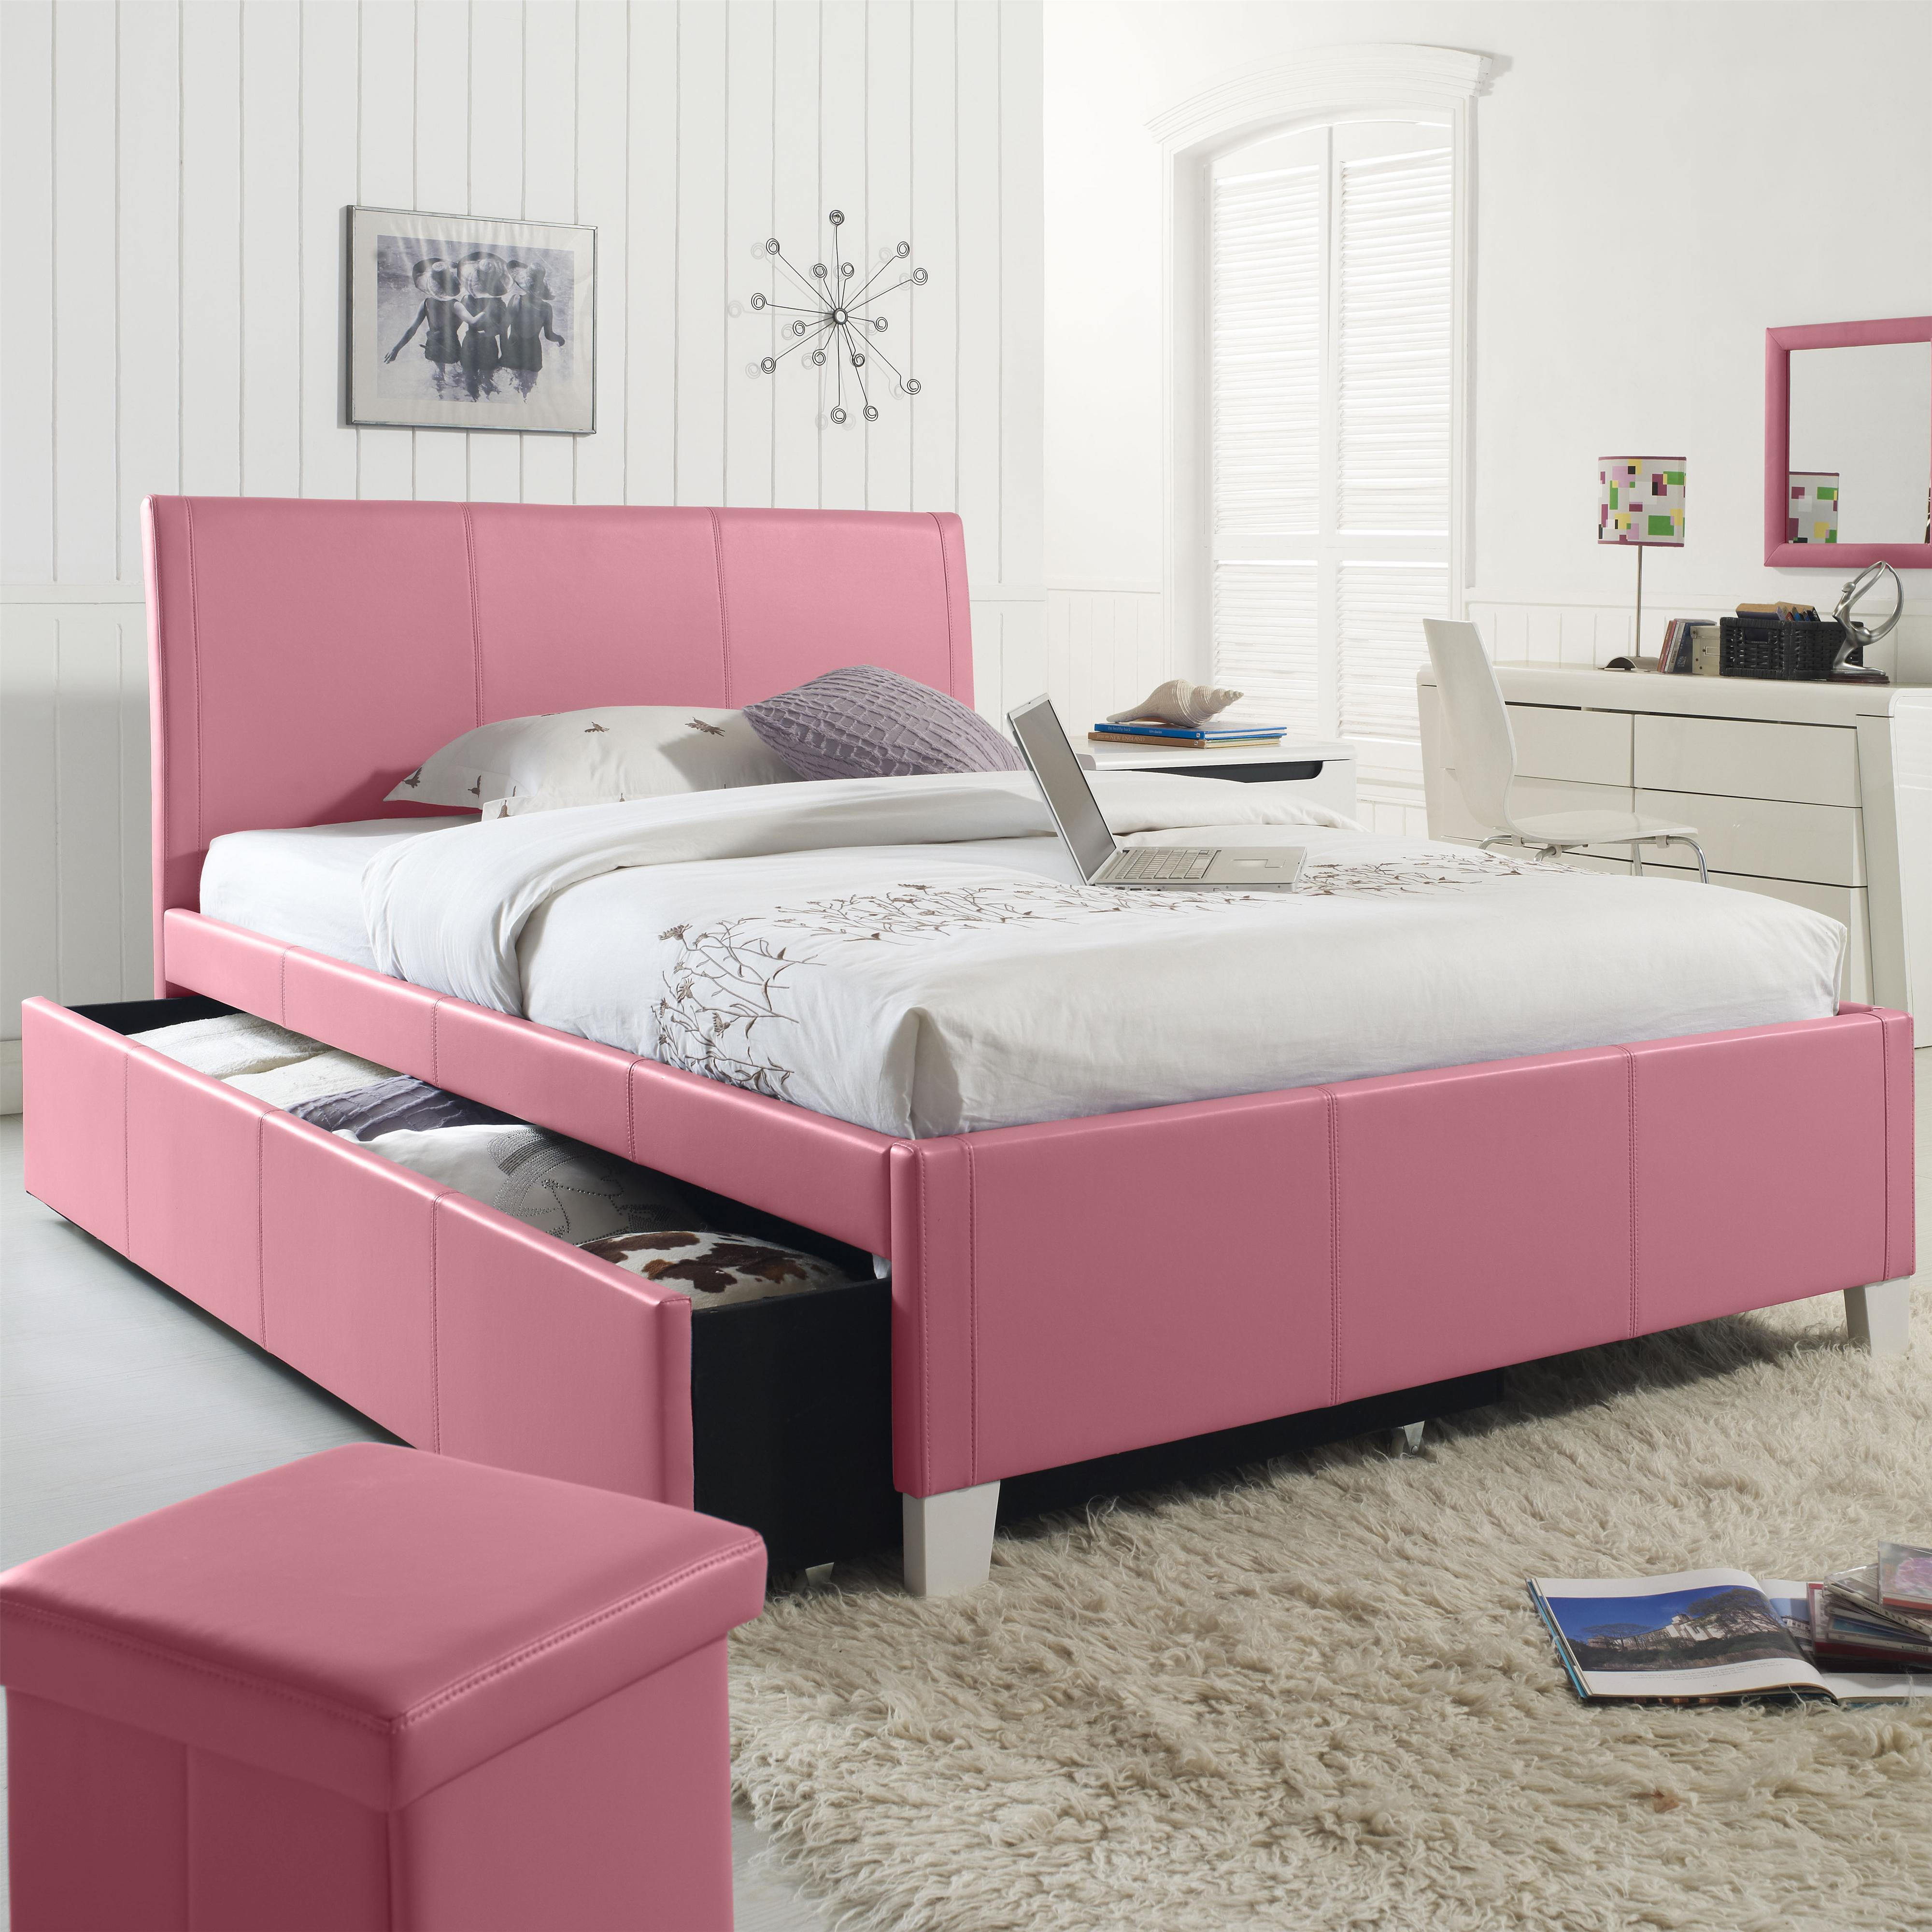 Kids Queen Bed Twin Upholstered Youth Trundle Bed By Standard Furniture Wolf